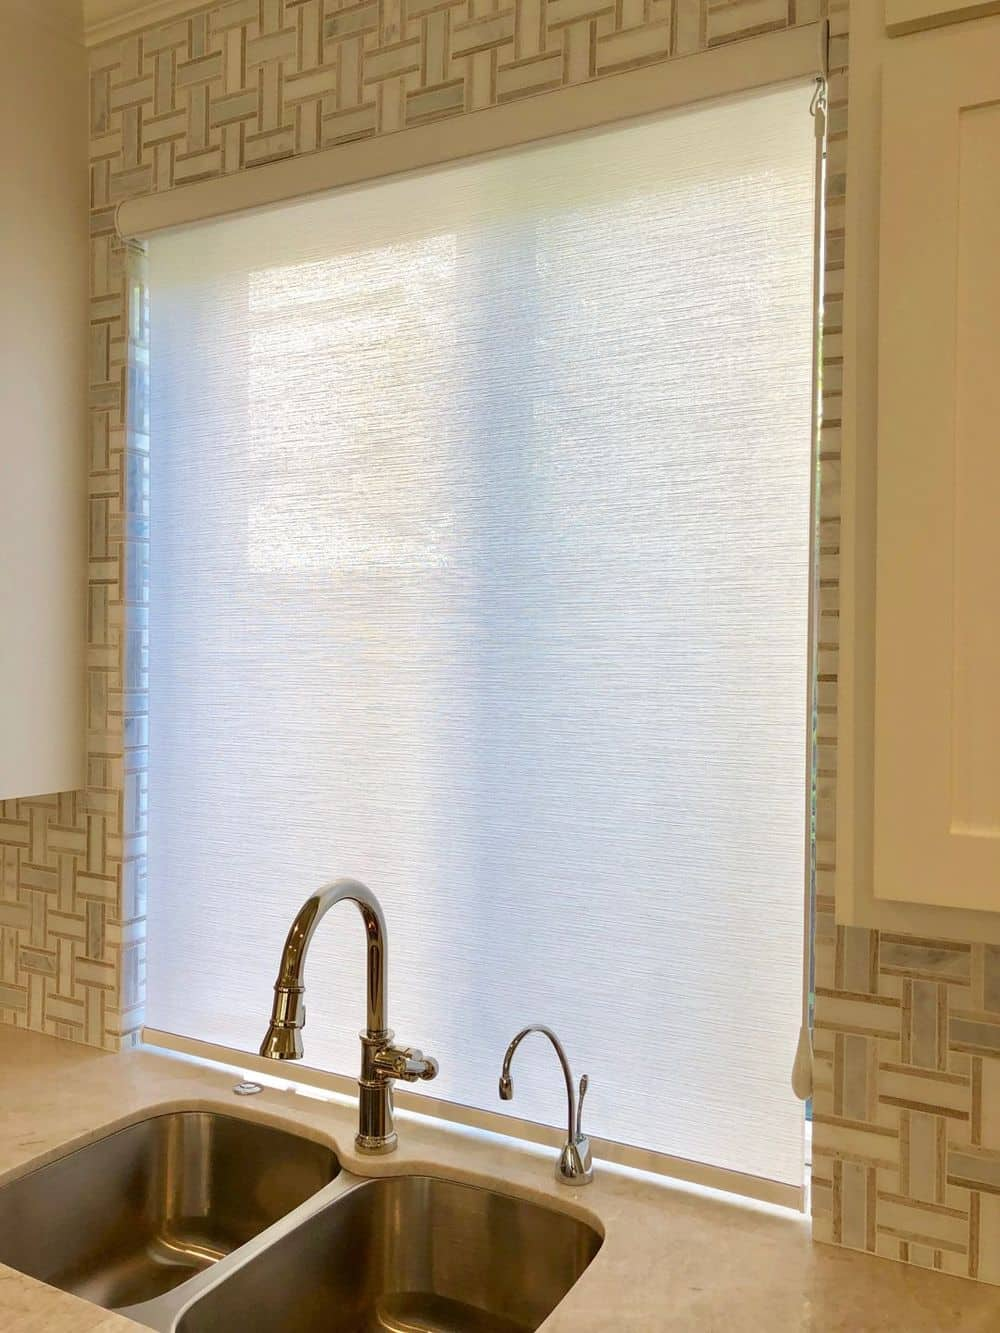 A focused shot at this home's kitchen window featuring a window shade. The stylish sink backsplash of the kitchen can be seen as well.